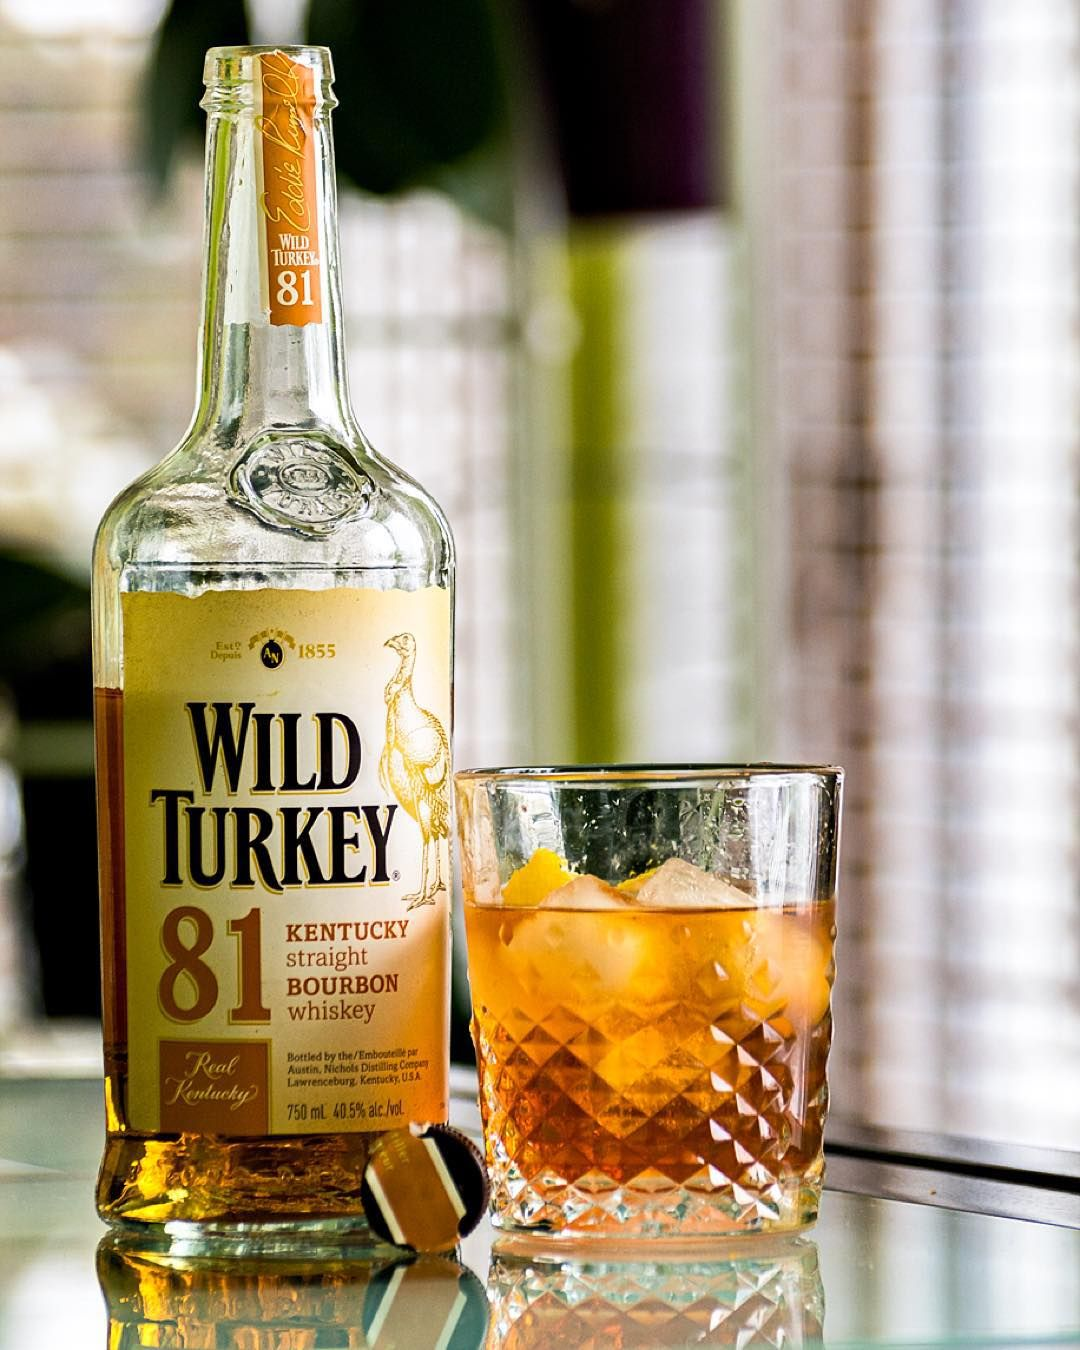 "16 Likes, 4 Comments - Jason Hope (@hopeja) on Instagram: ""It starts. The #OldFashioned has been. Let #NYE celebrations commence! #WildTurkey"""